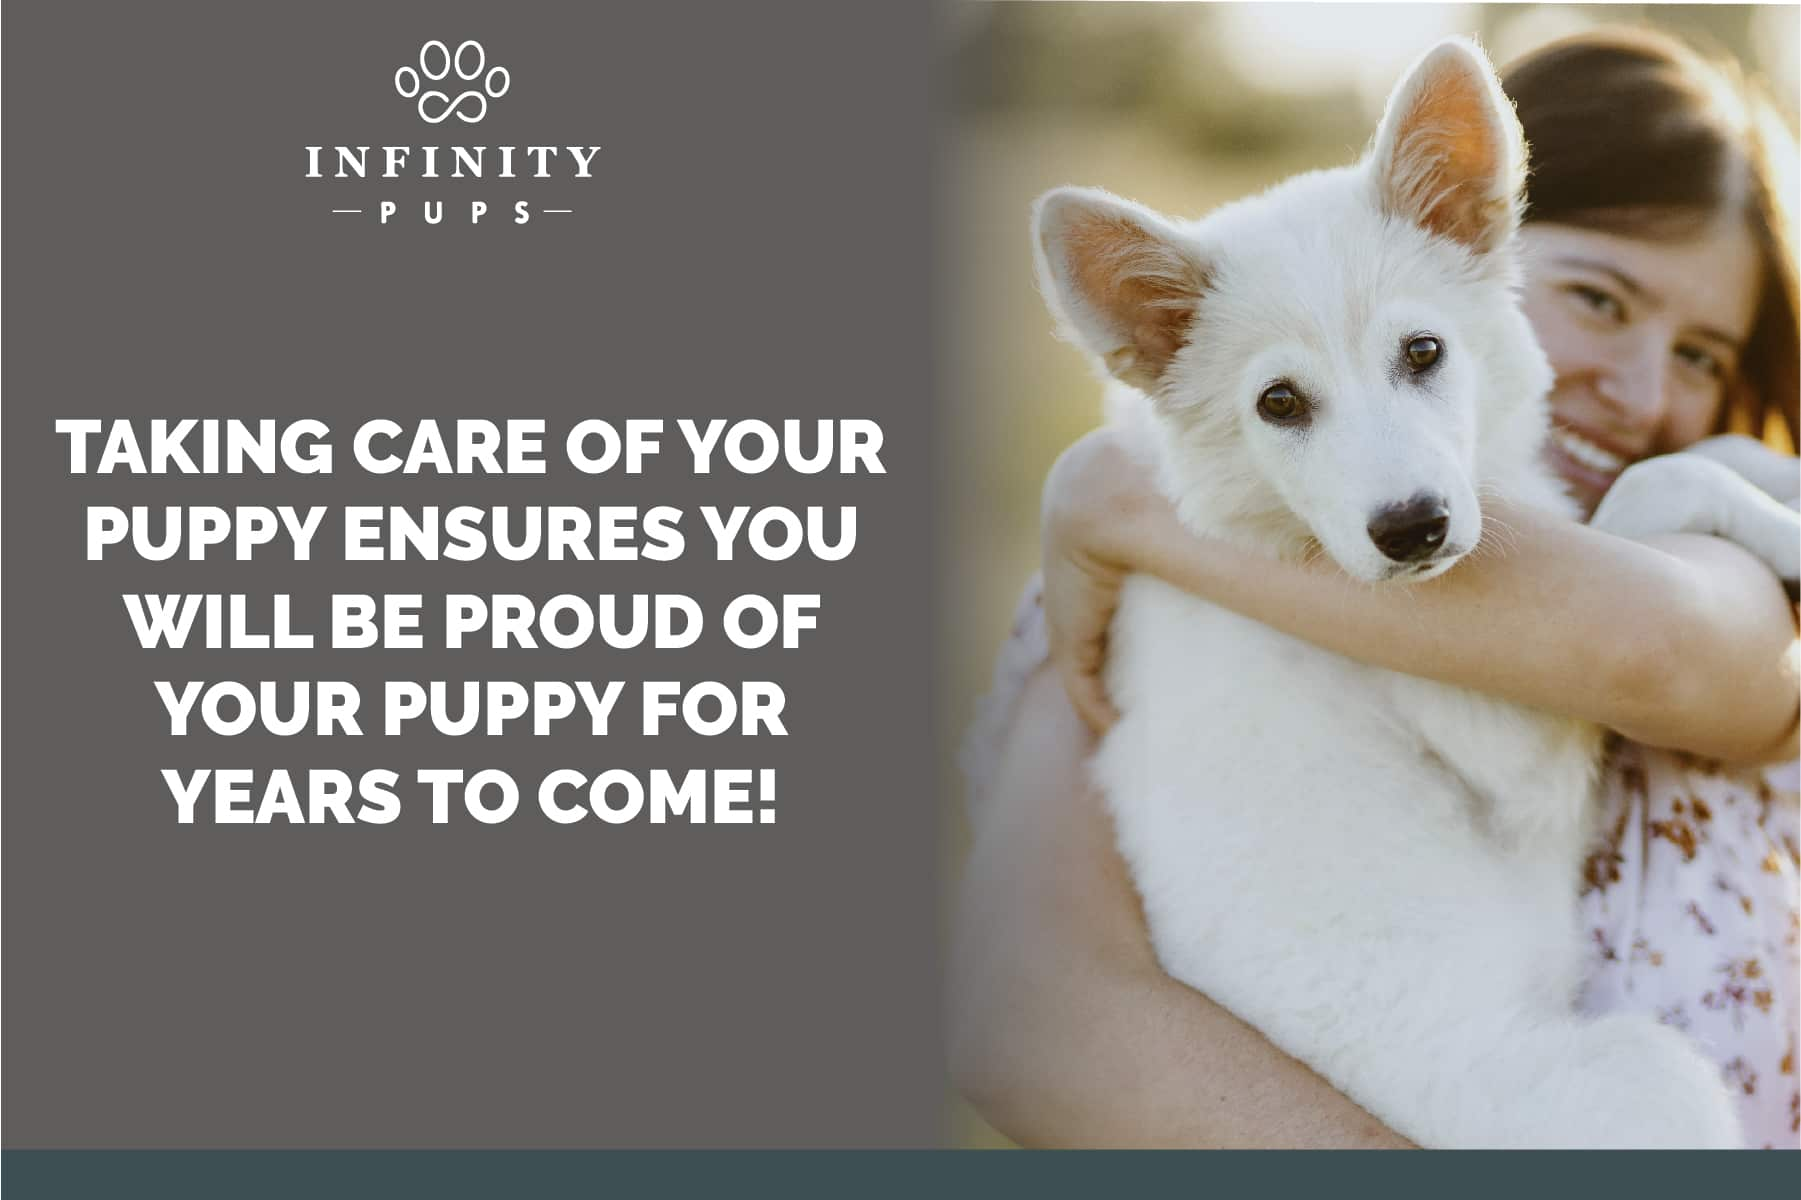 taking proper care of your puppy ensures a healthy puppy for years to come